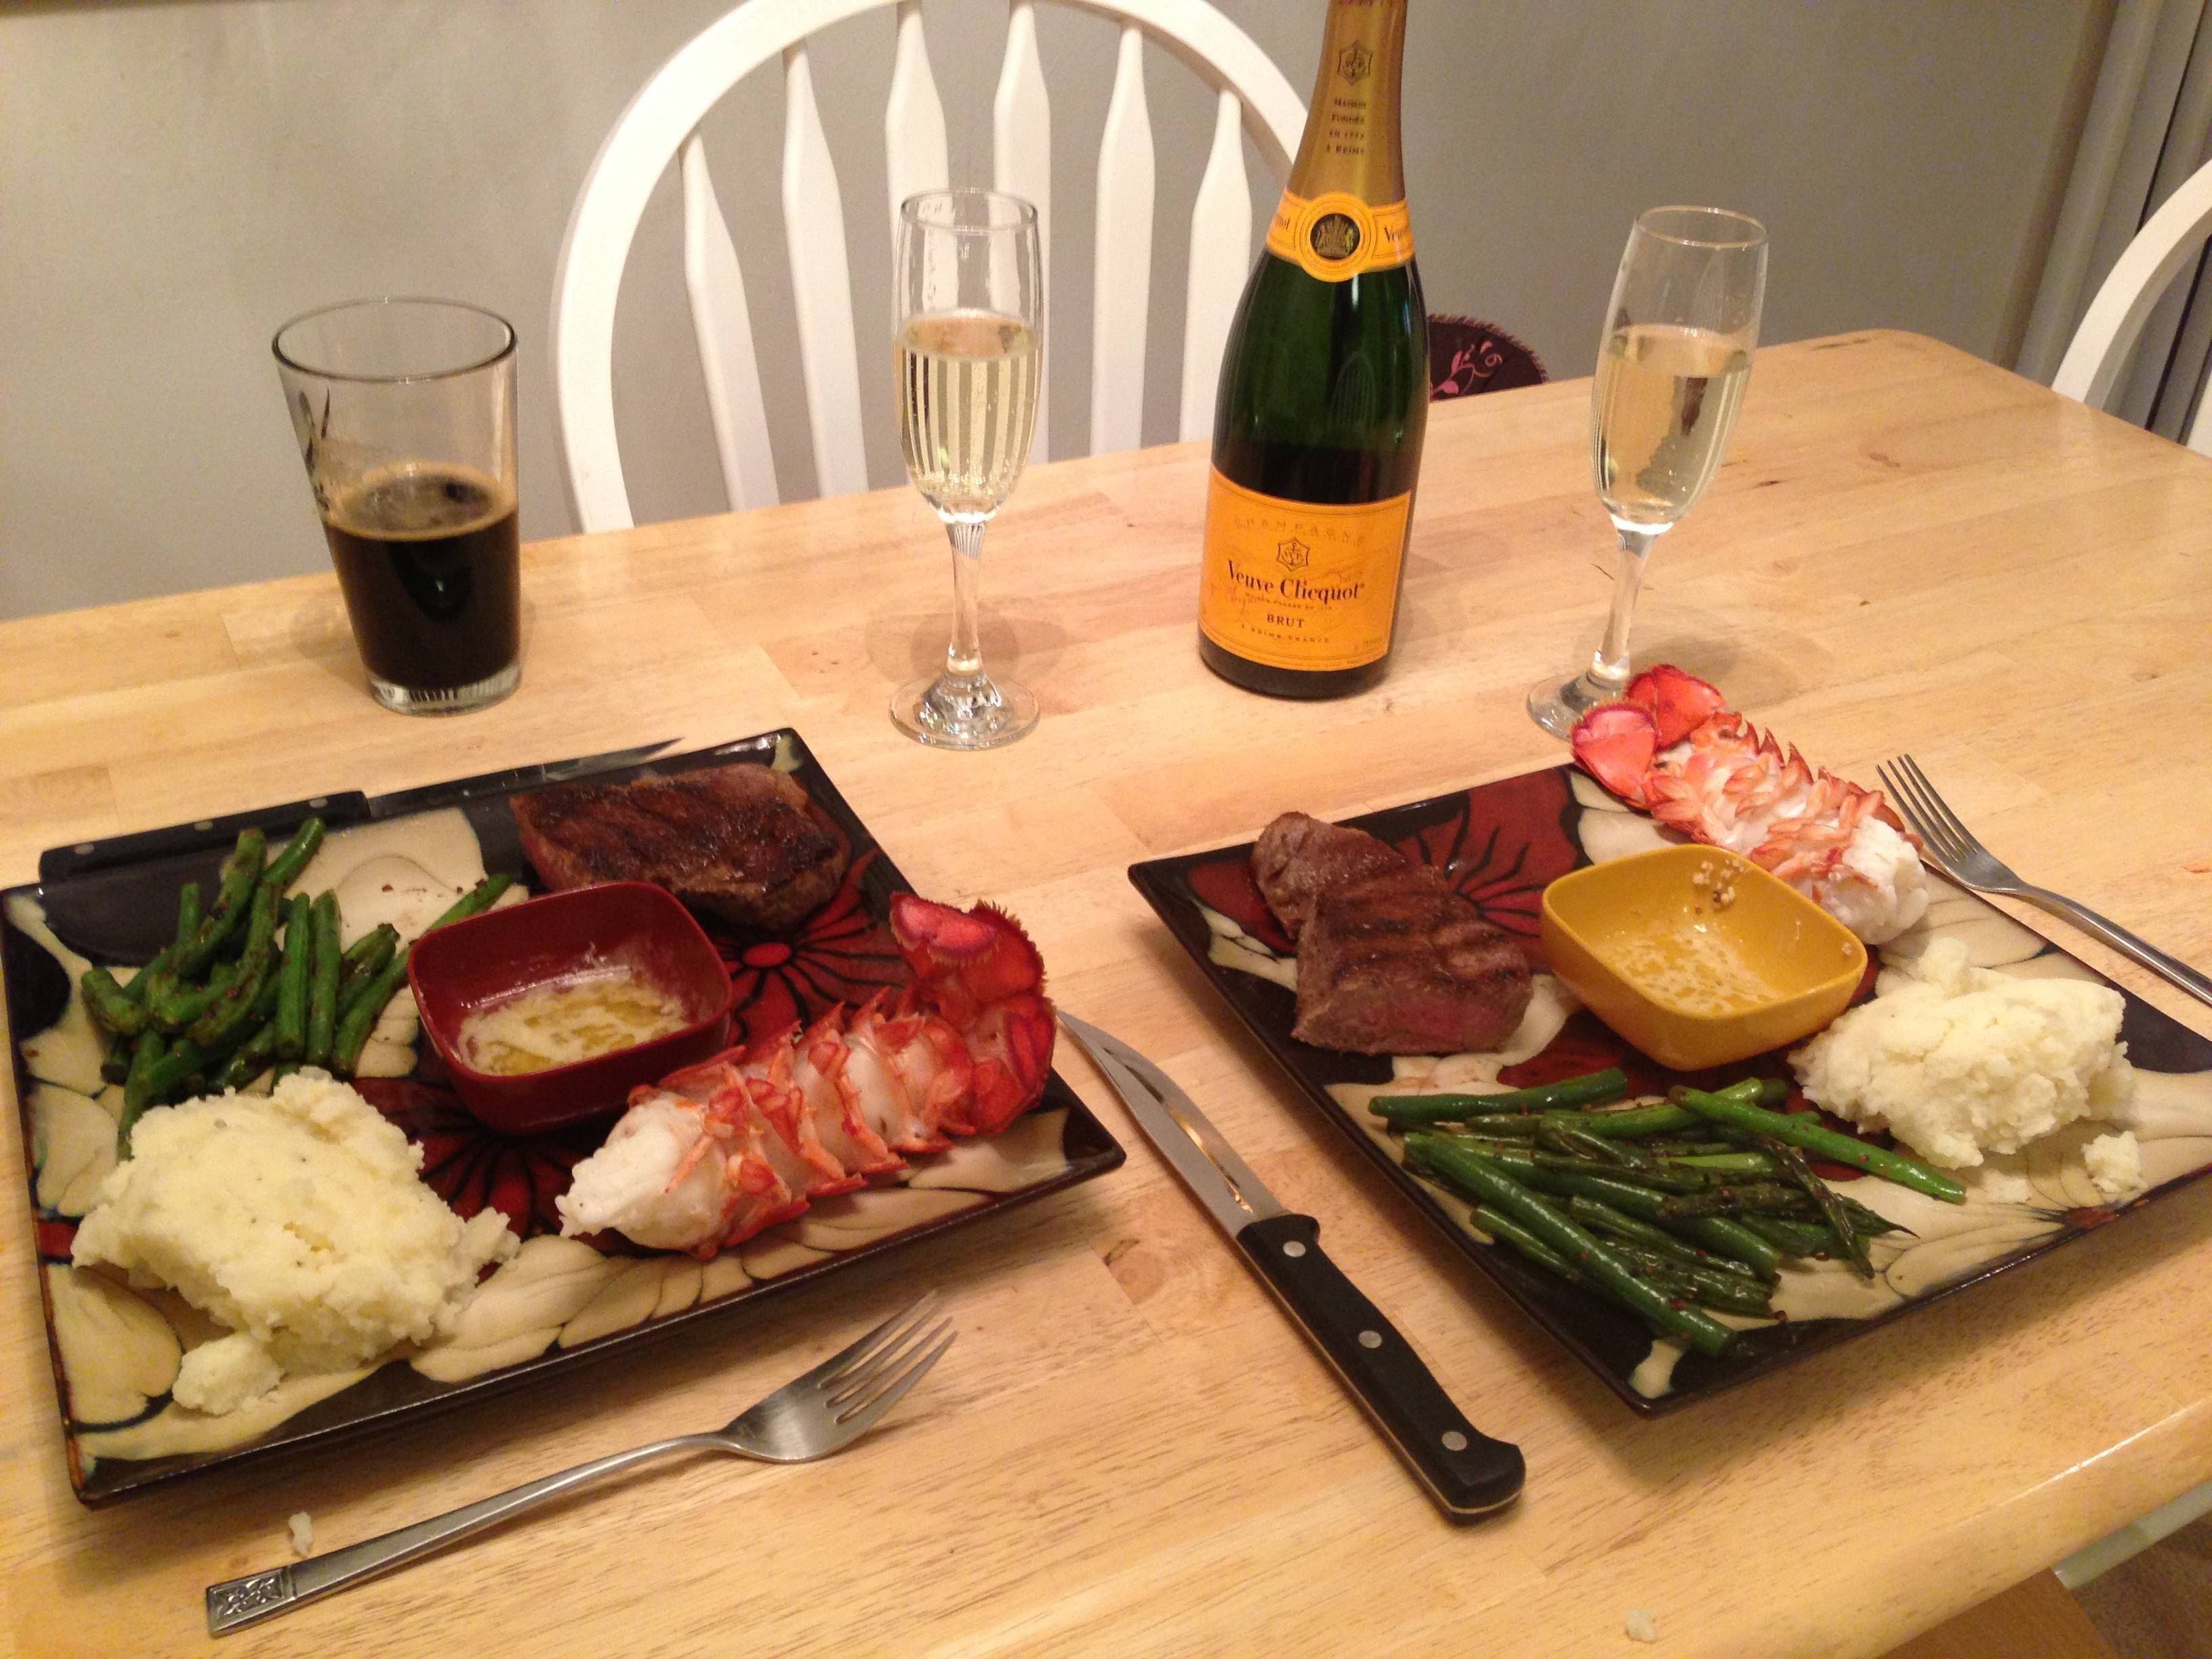 Romantic valentines meals at home - Romantic Valentines Day Dinner At Home Real House Design